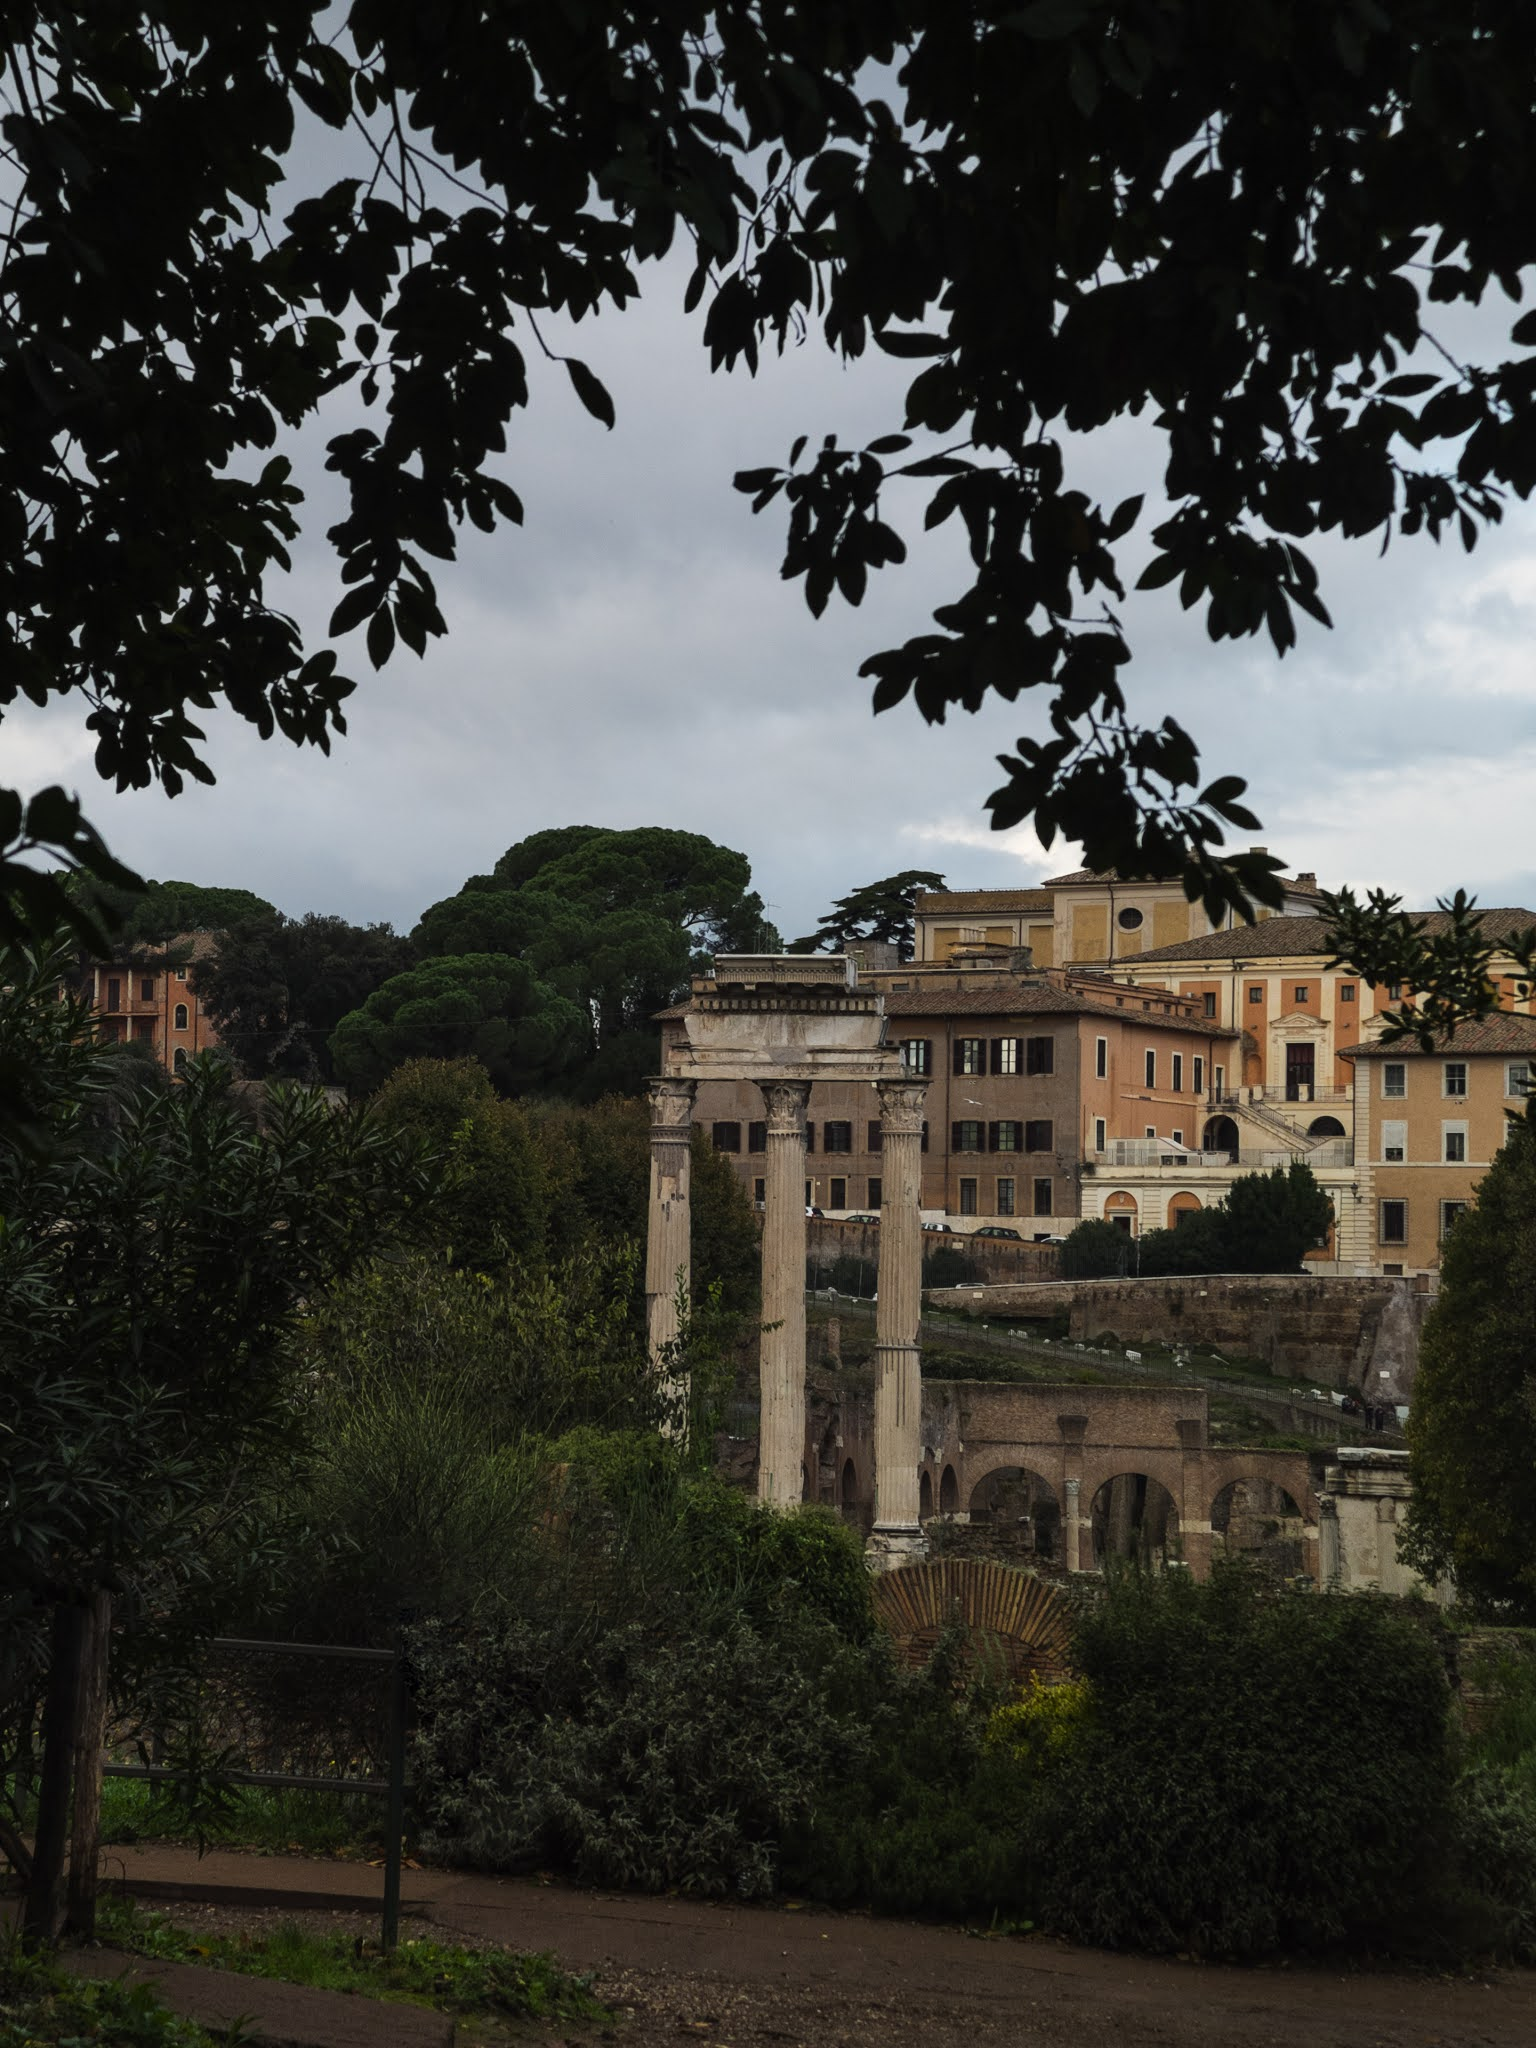 View of the Temple of Castor and Pollux in the Roman Forum from the Palatine Hill surrounded by trees.